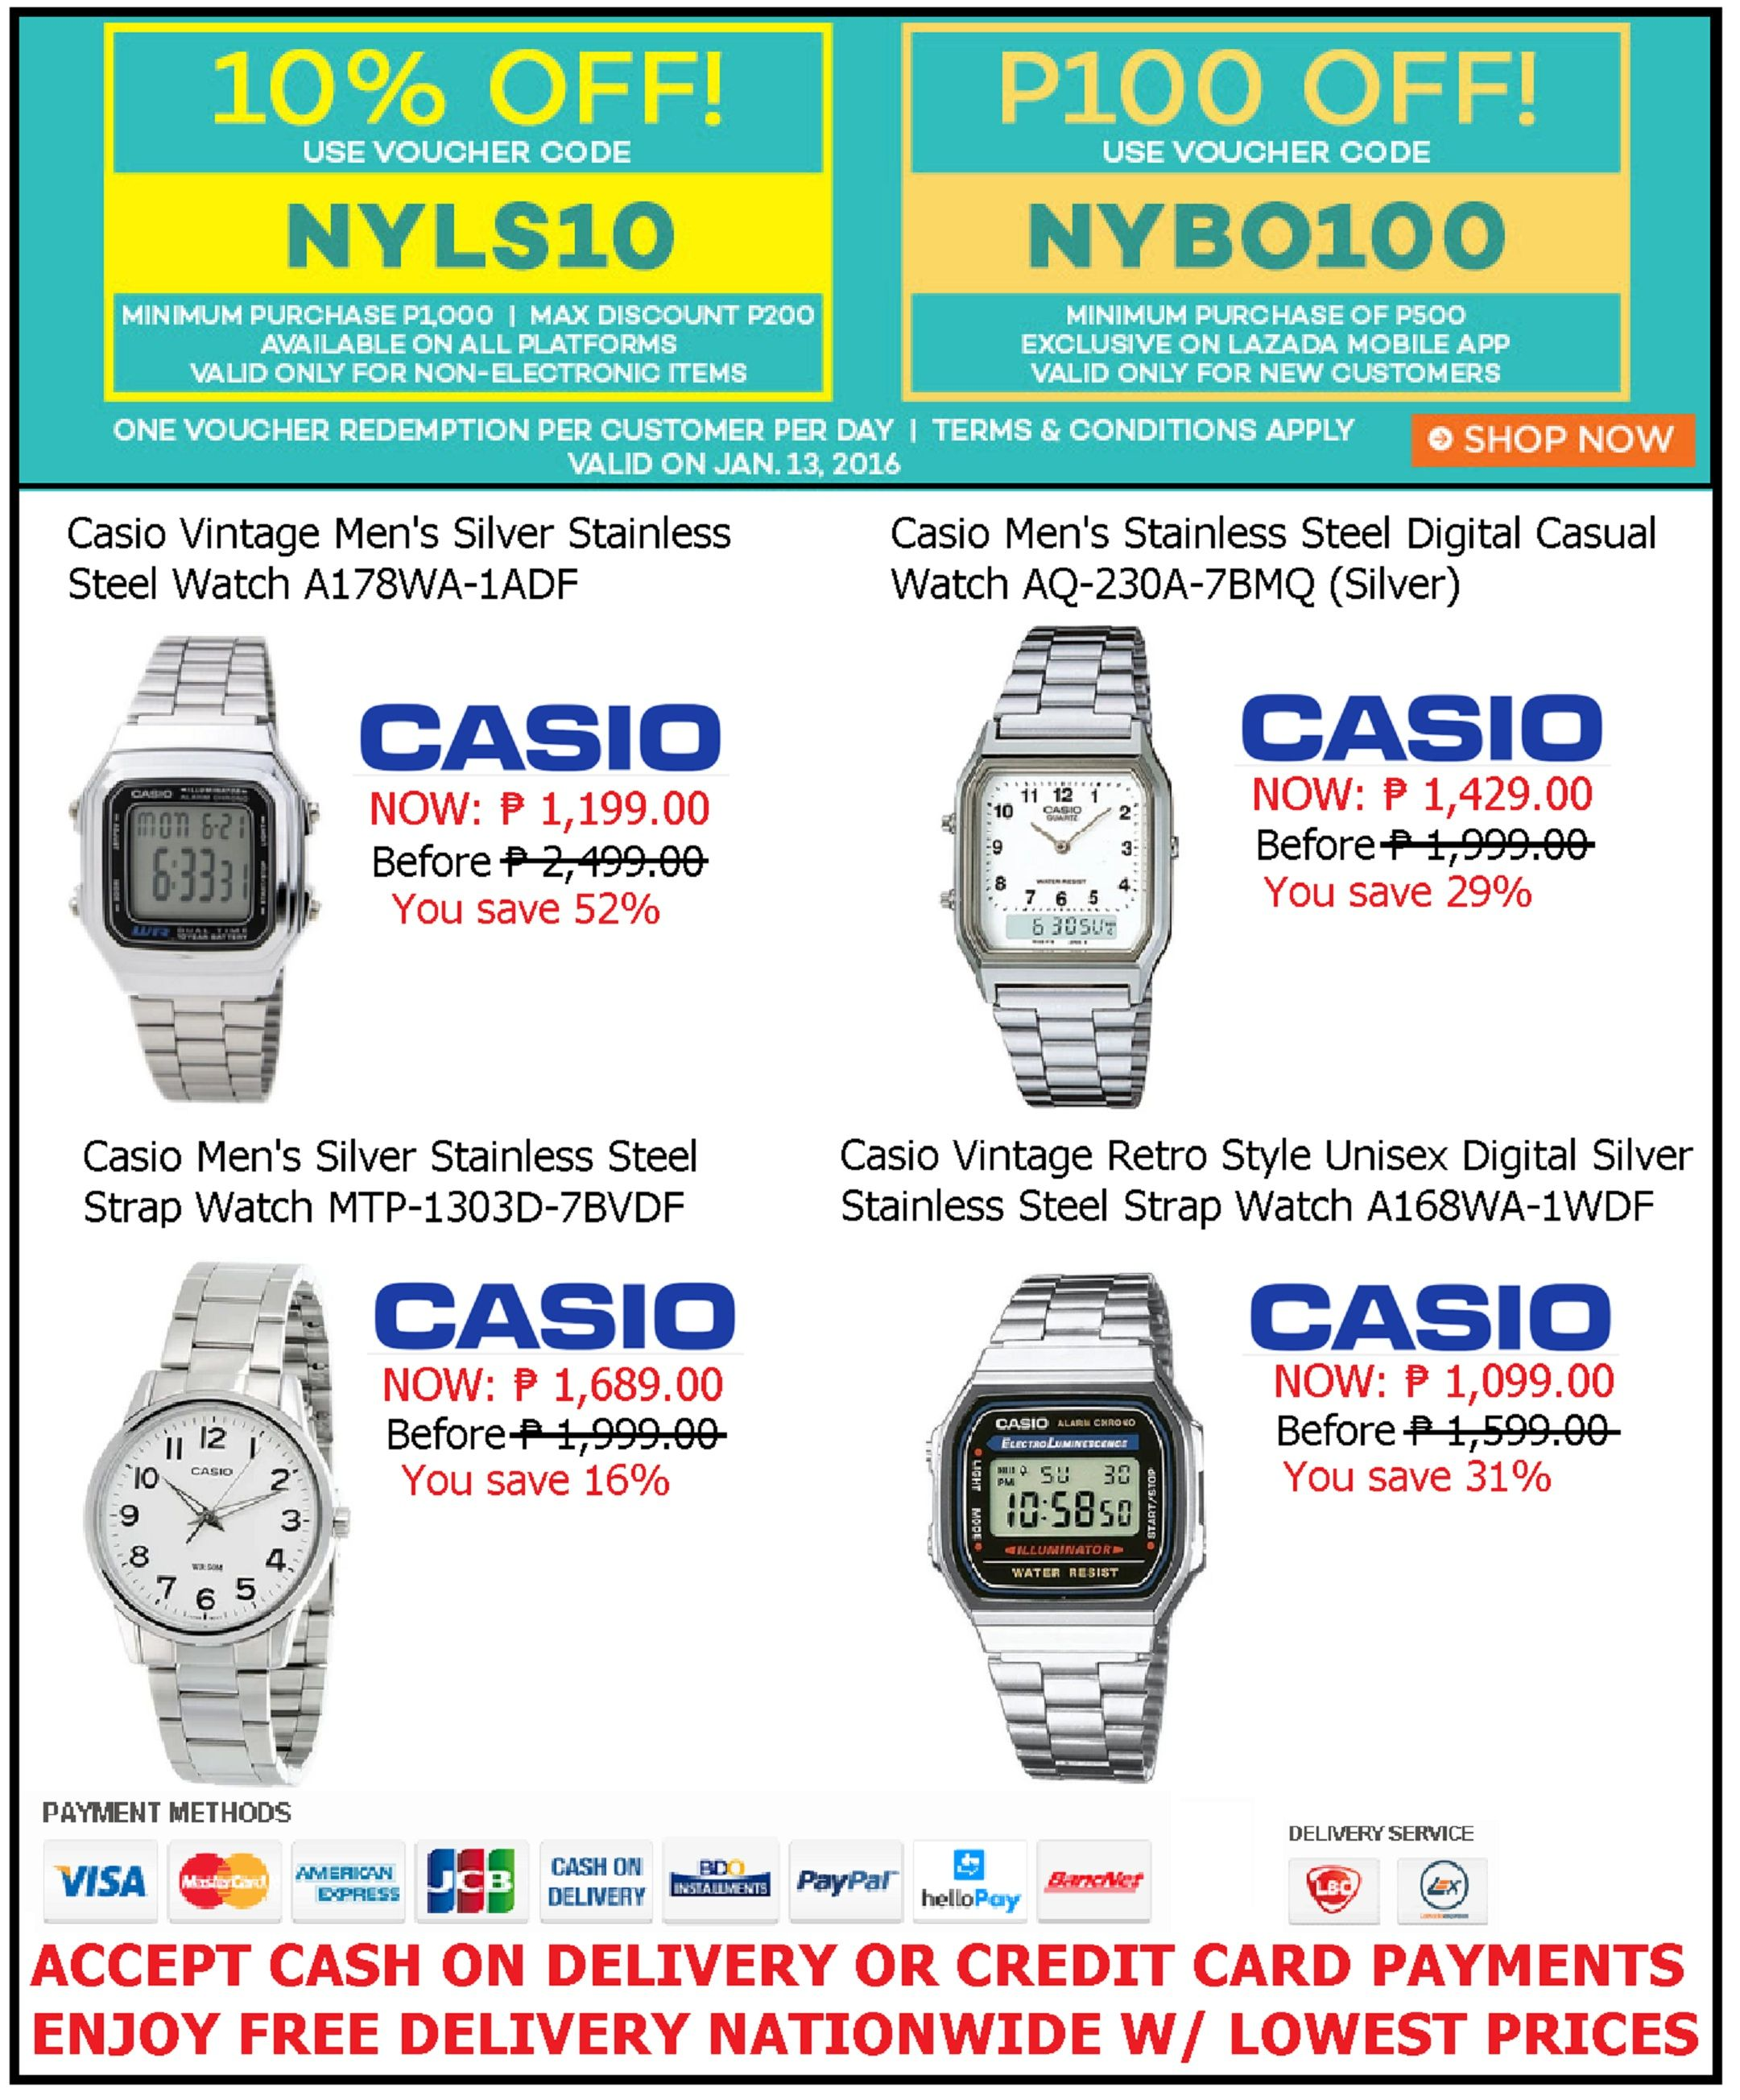 CASIO WATCH SALE LAZADA'S NEW YEAR BLOWOUT PROMO! SAVE